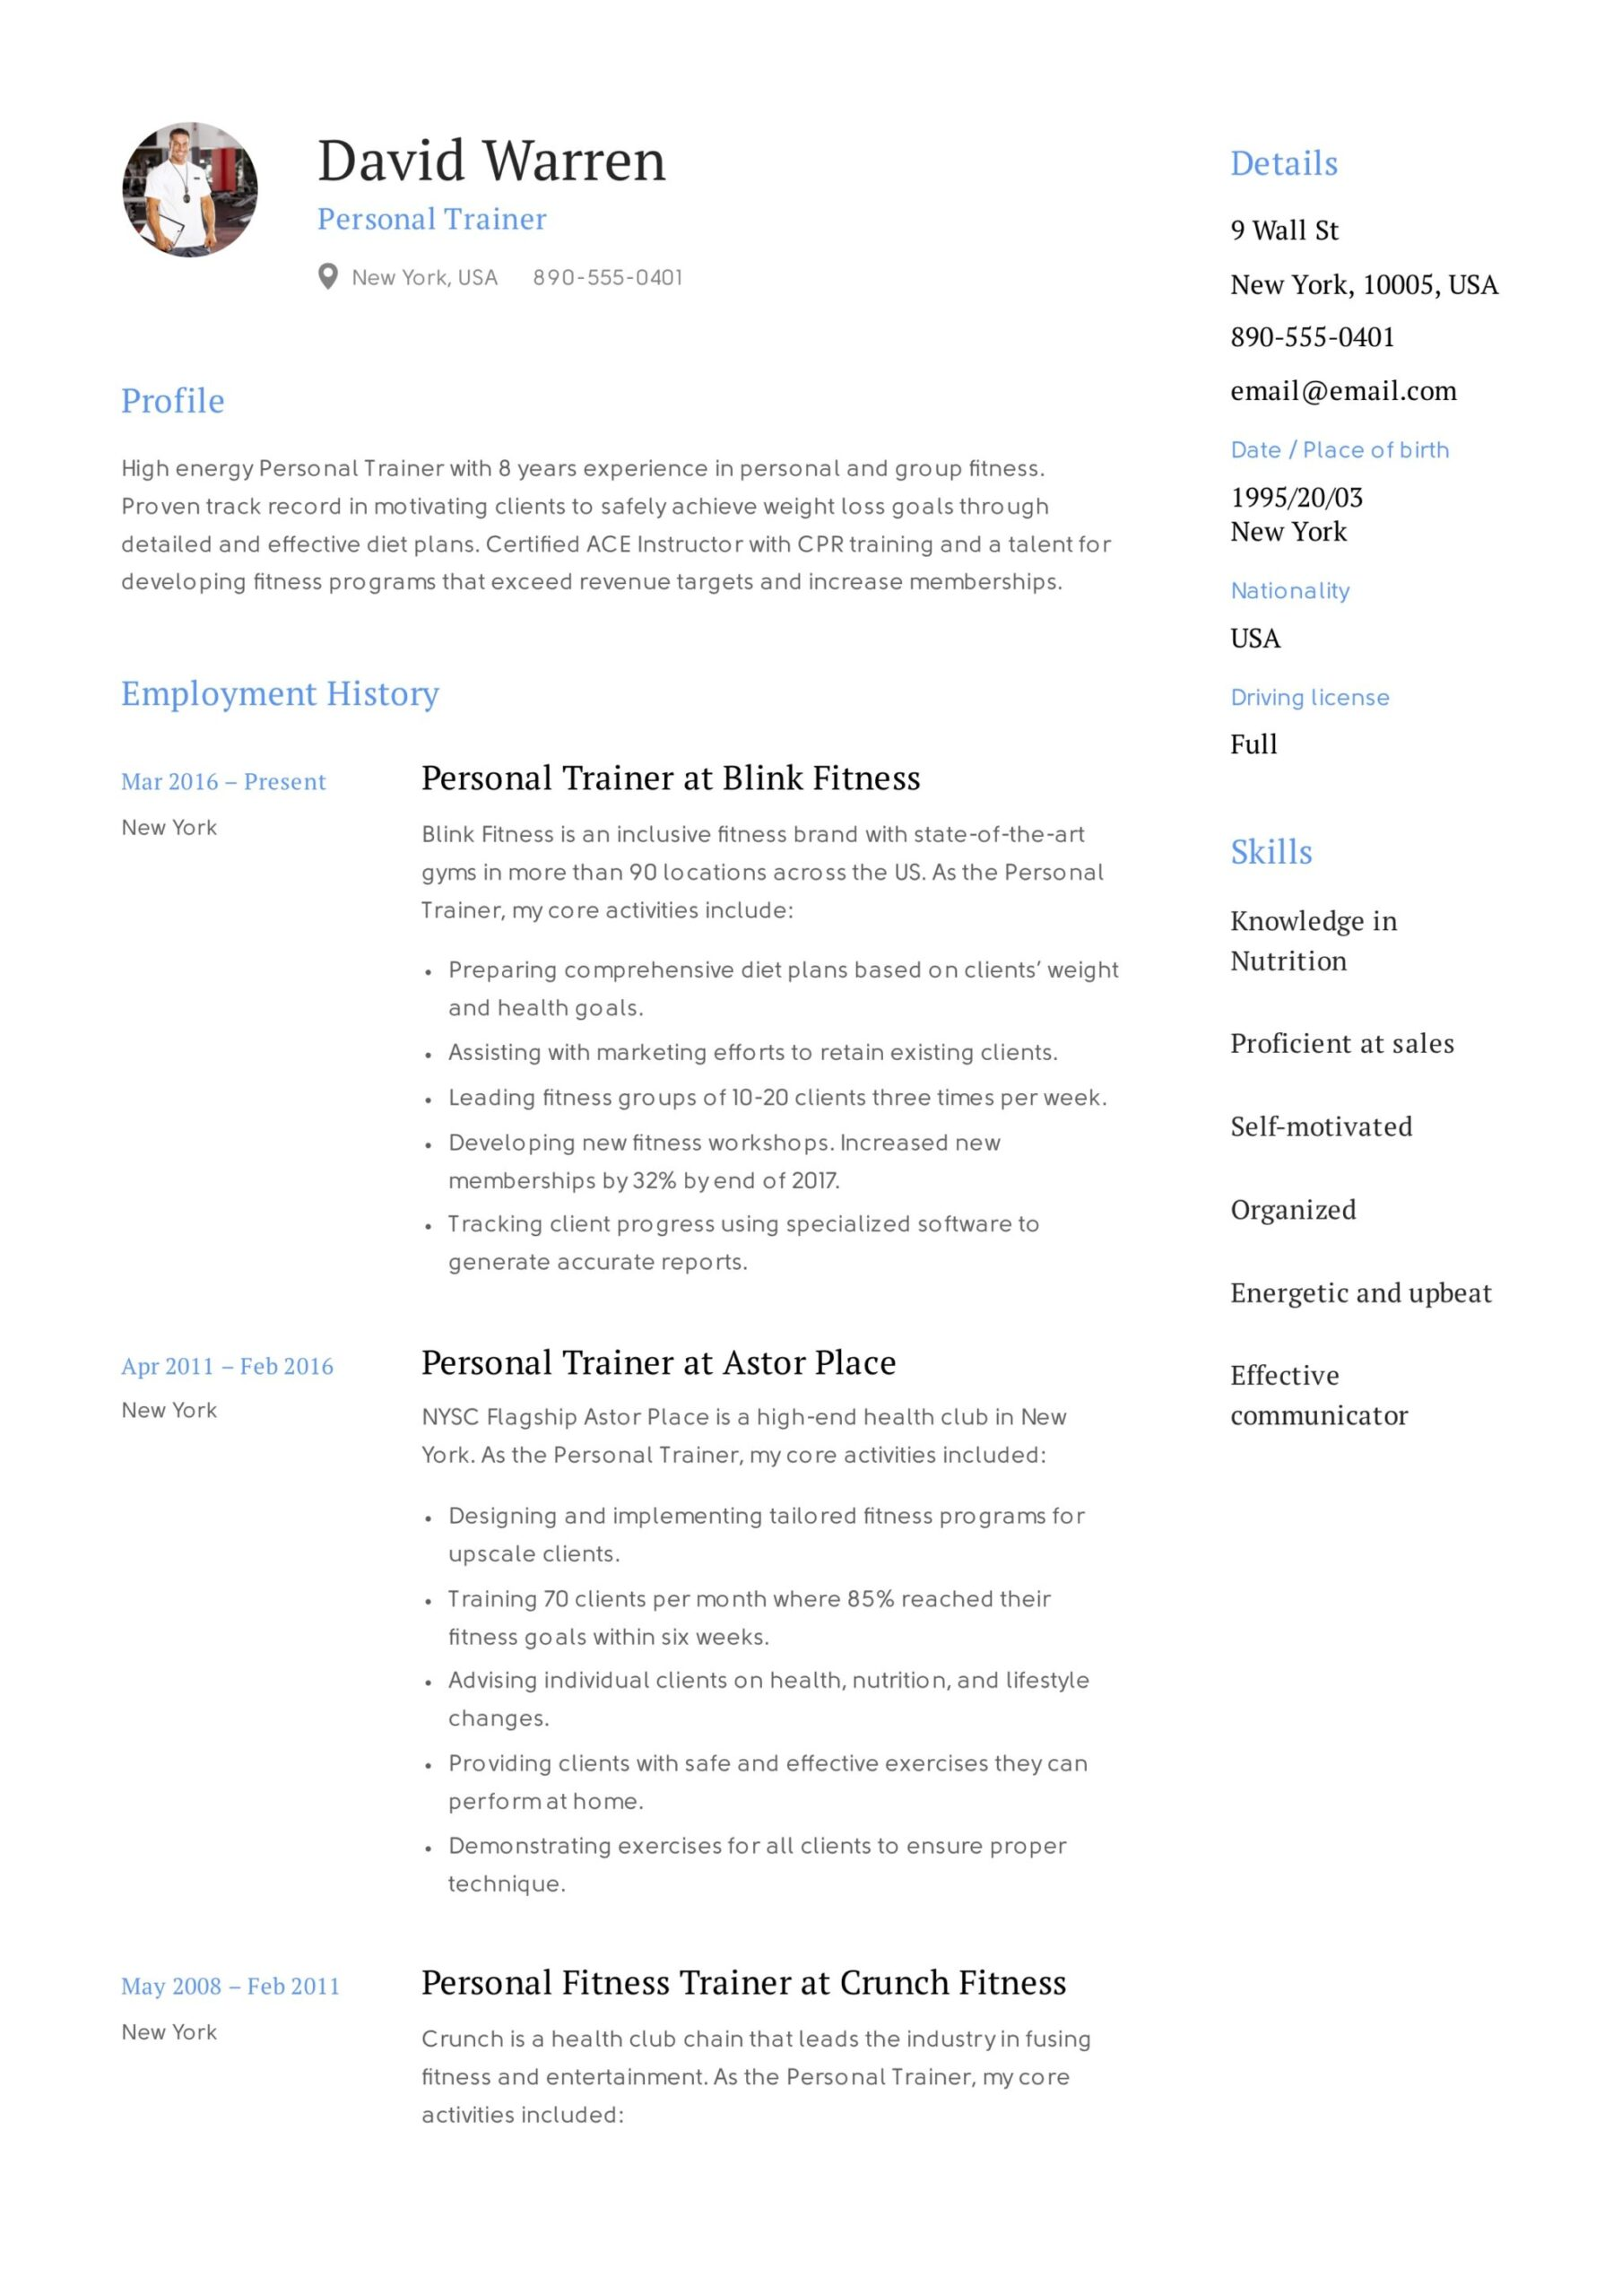 personal trainer resume guide examples pdf example pharmacist job description for react Resume Personal Trainer Resume Example